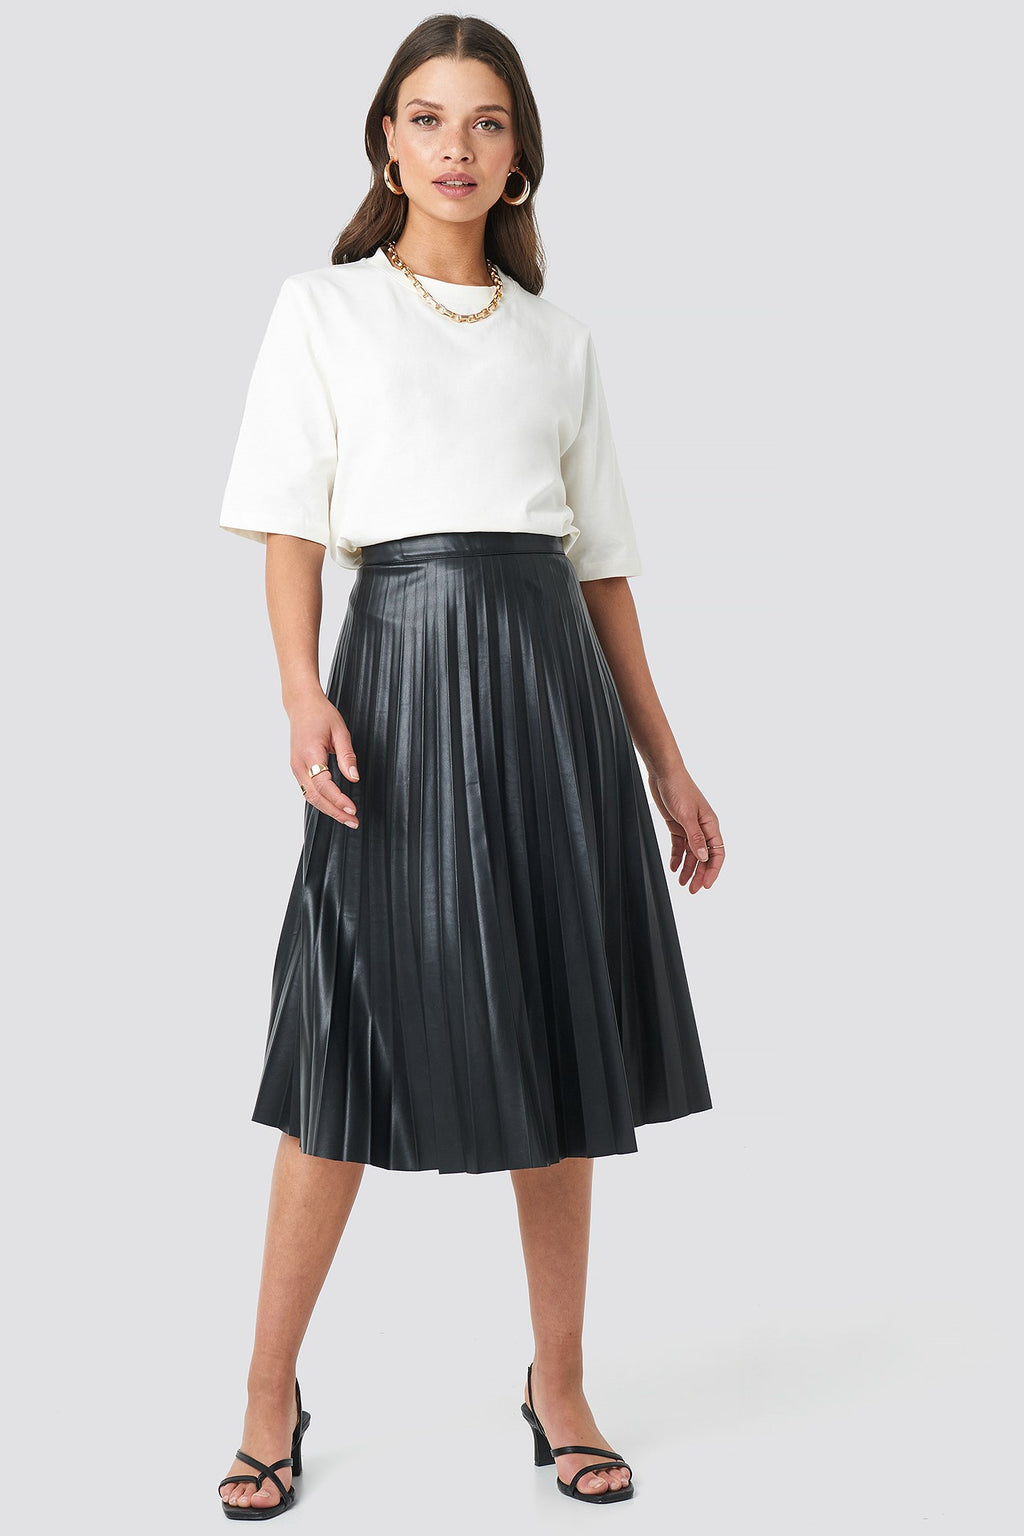 NA-KD Faux Leather Pleated skirt Black - Mojo Independent Store